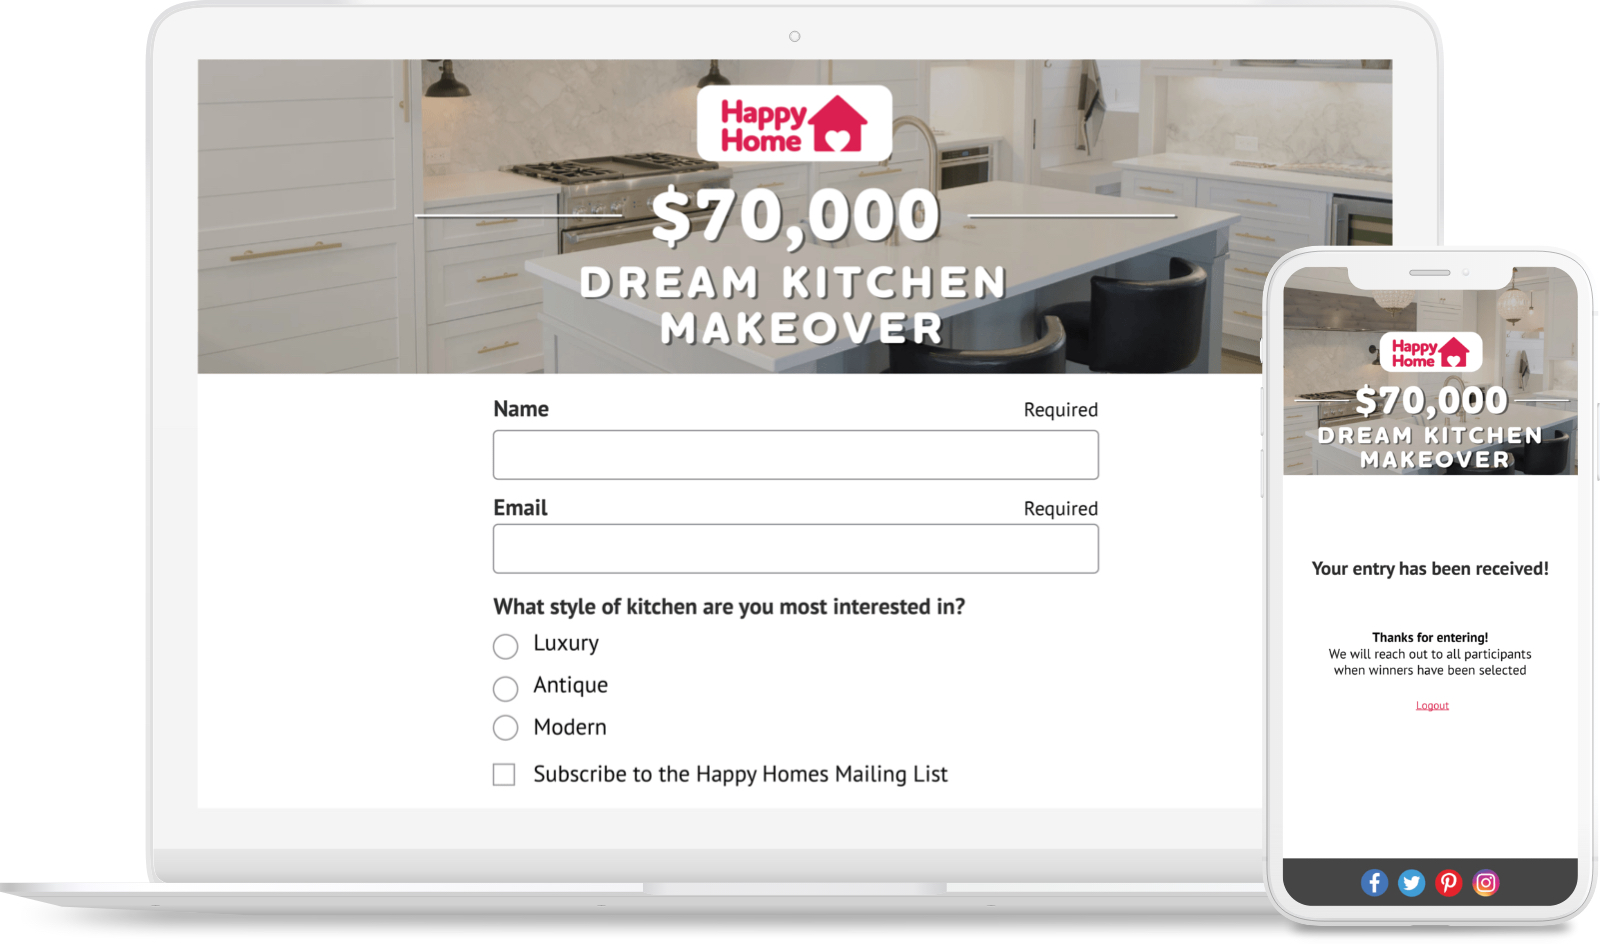 Dream Kitchen Makeover sweepstakes with a lead-gen survey question.